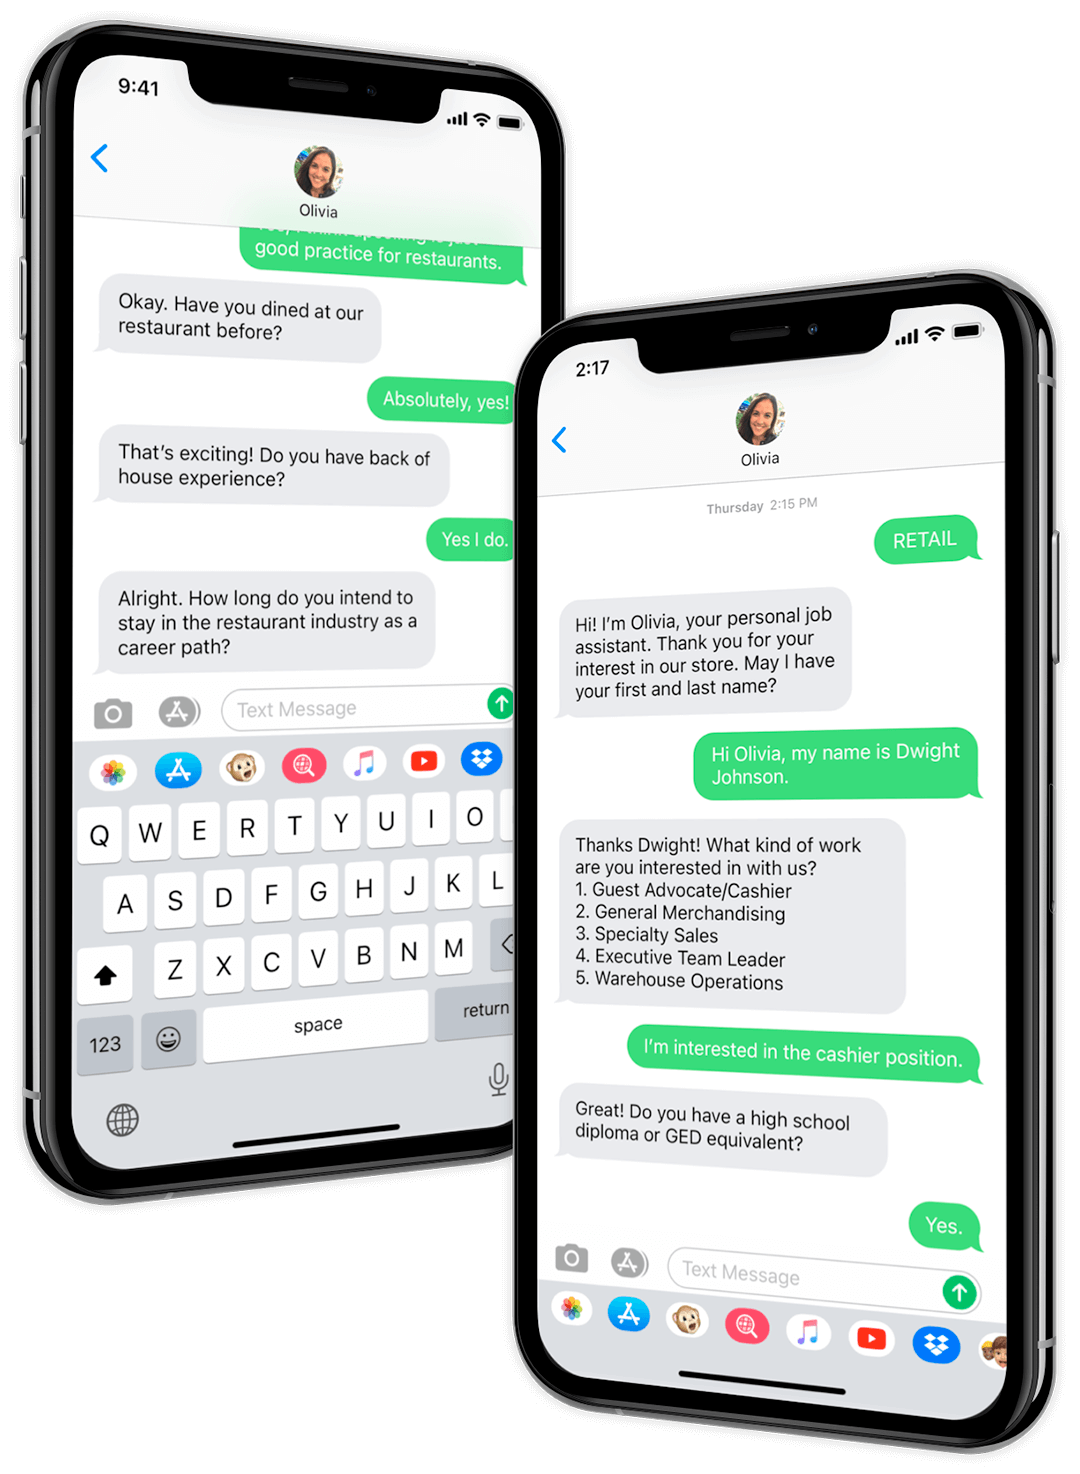 Paradox Capture is an AI recruiting tool to help you schedule interviews and more